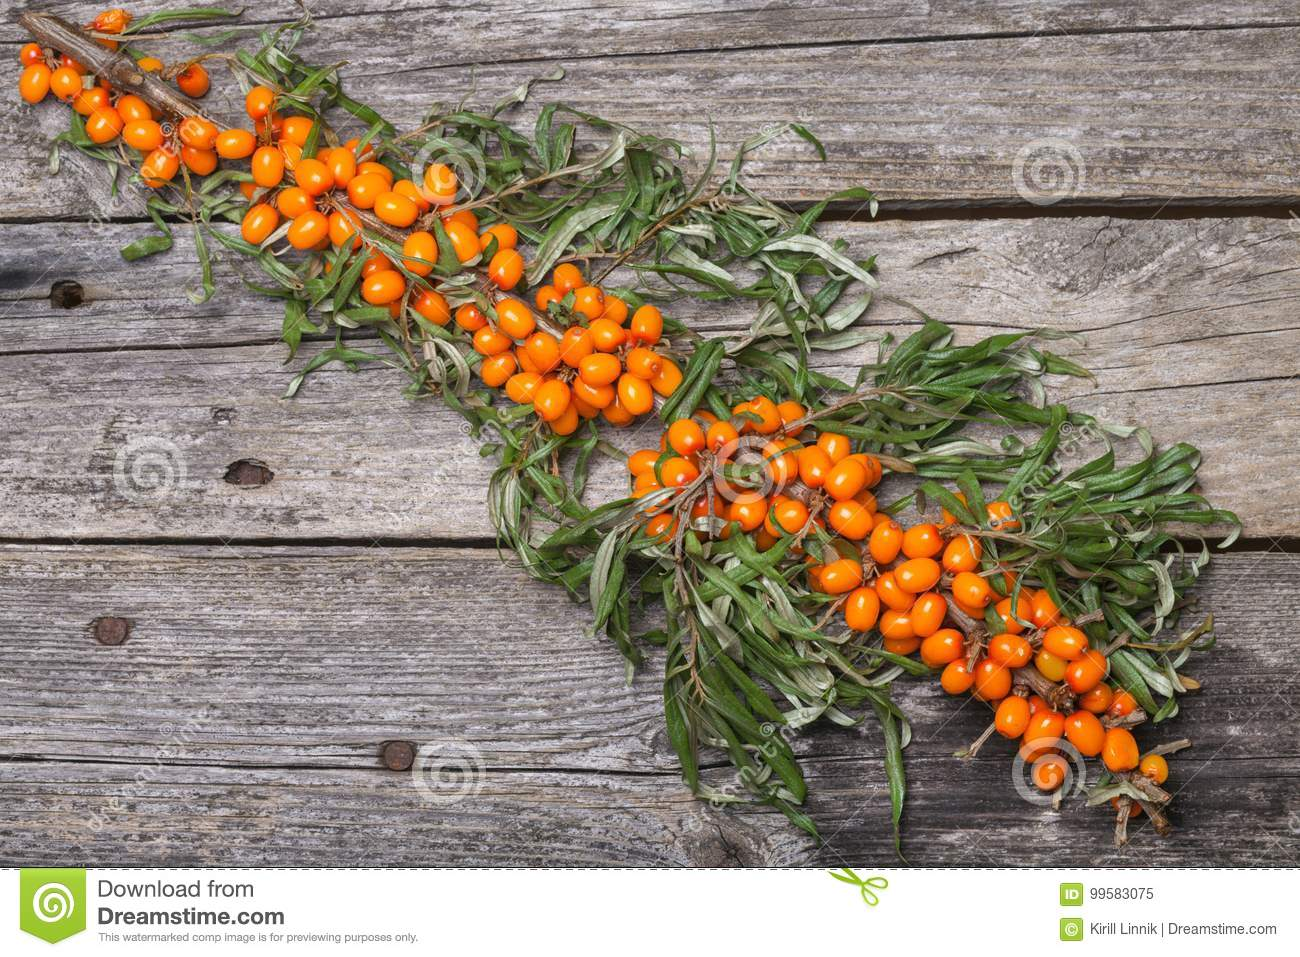 Download Fresh Seabuckthorn On The Table Stock Image - Image of mature, harvest: 99583075